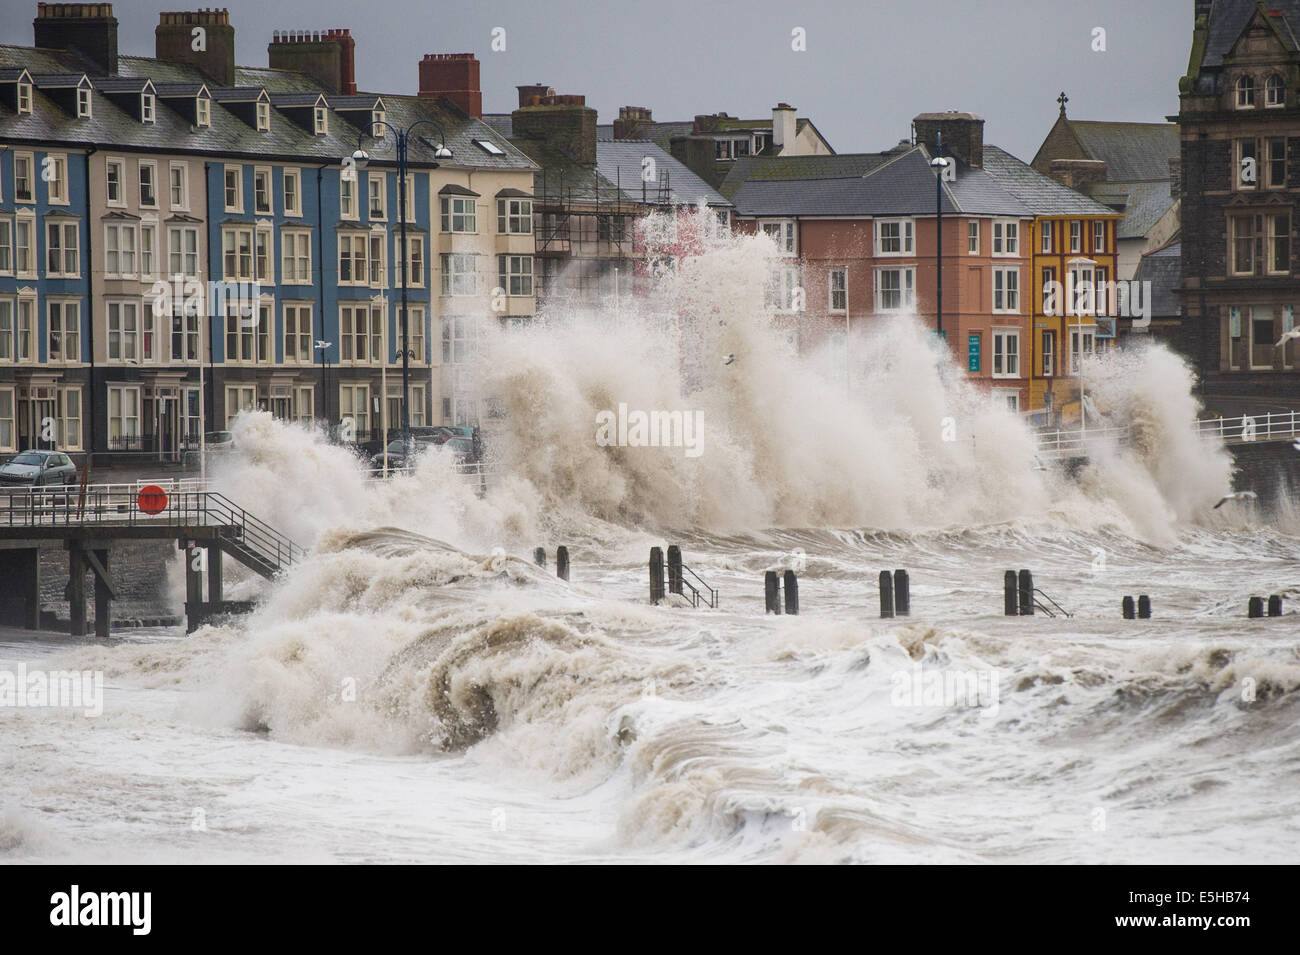 Aberystwyth, Wales, UK. 15 Feb 2014.  19-BEFORE: DURING THE STORMS. Winds gusting up to 60-70mph drive huge waves - Stock Image